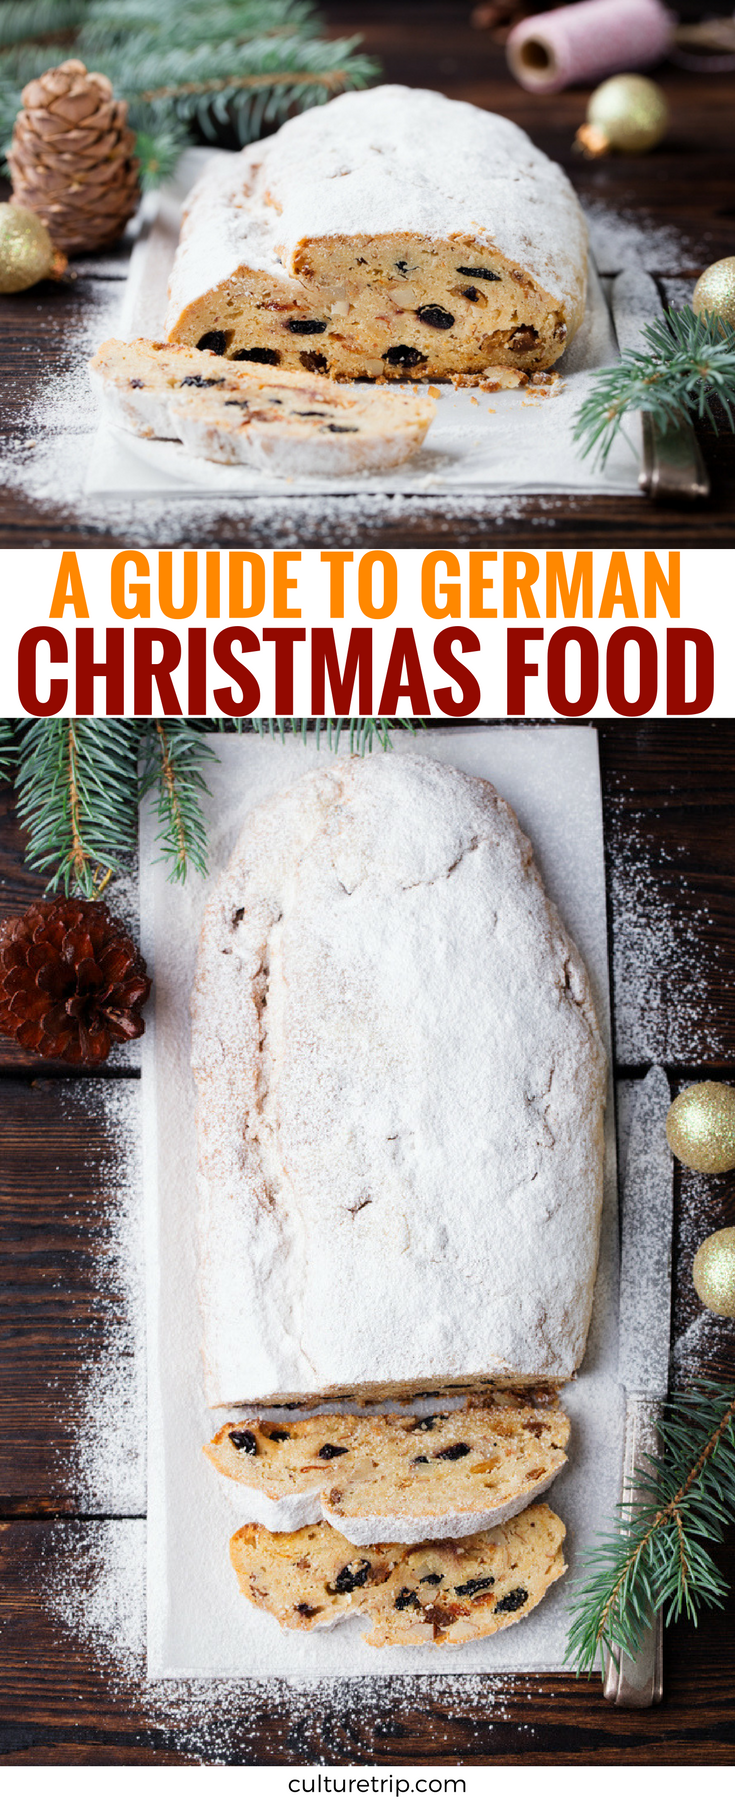 A Guide To German Christmas Foods in 2018 | WHERE TO EAT&DRINK ...